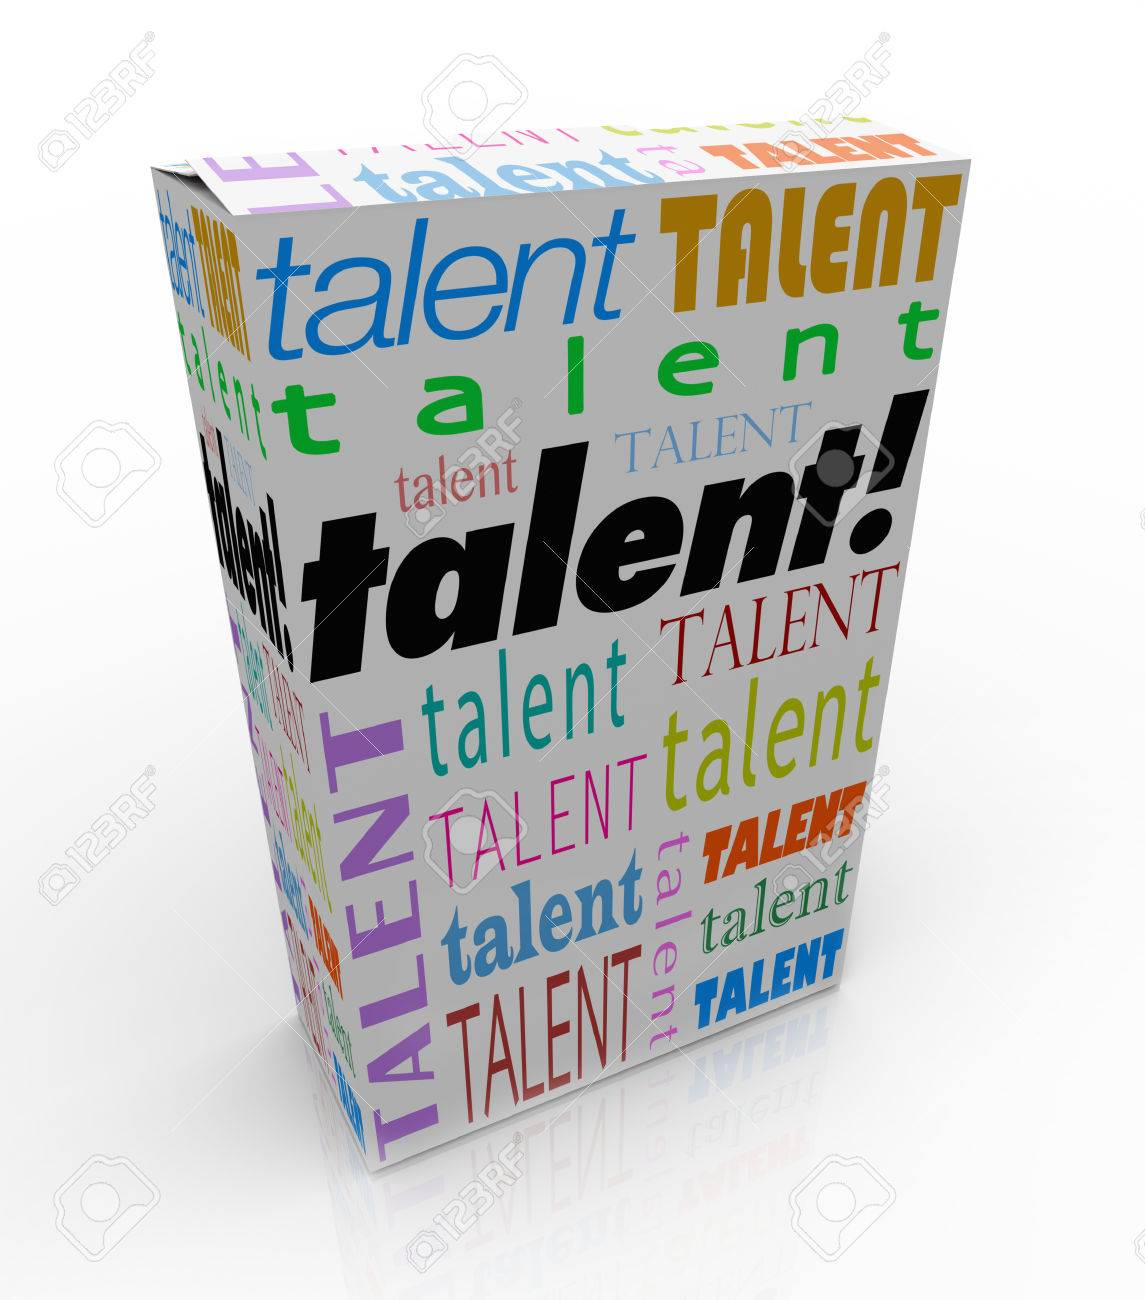 talent word on a box or product package to sell yourself and stock photo talent word on a box or product package to sell yourself and your skills to a prospective employer and get hired for a job